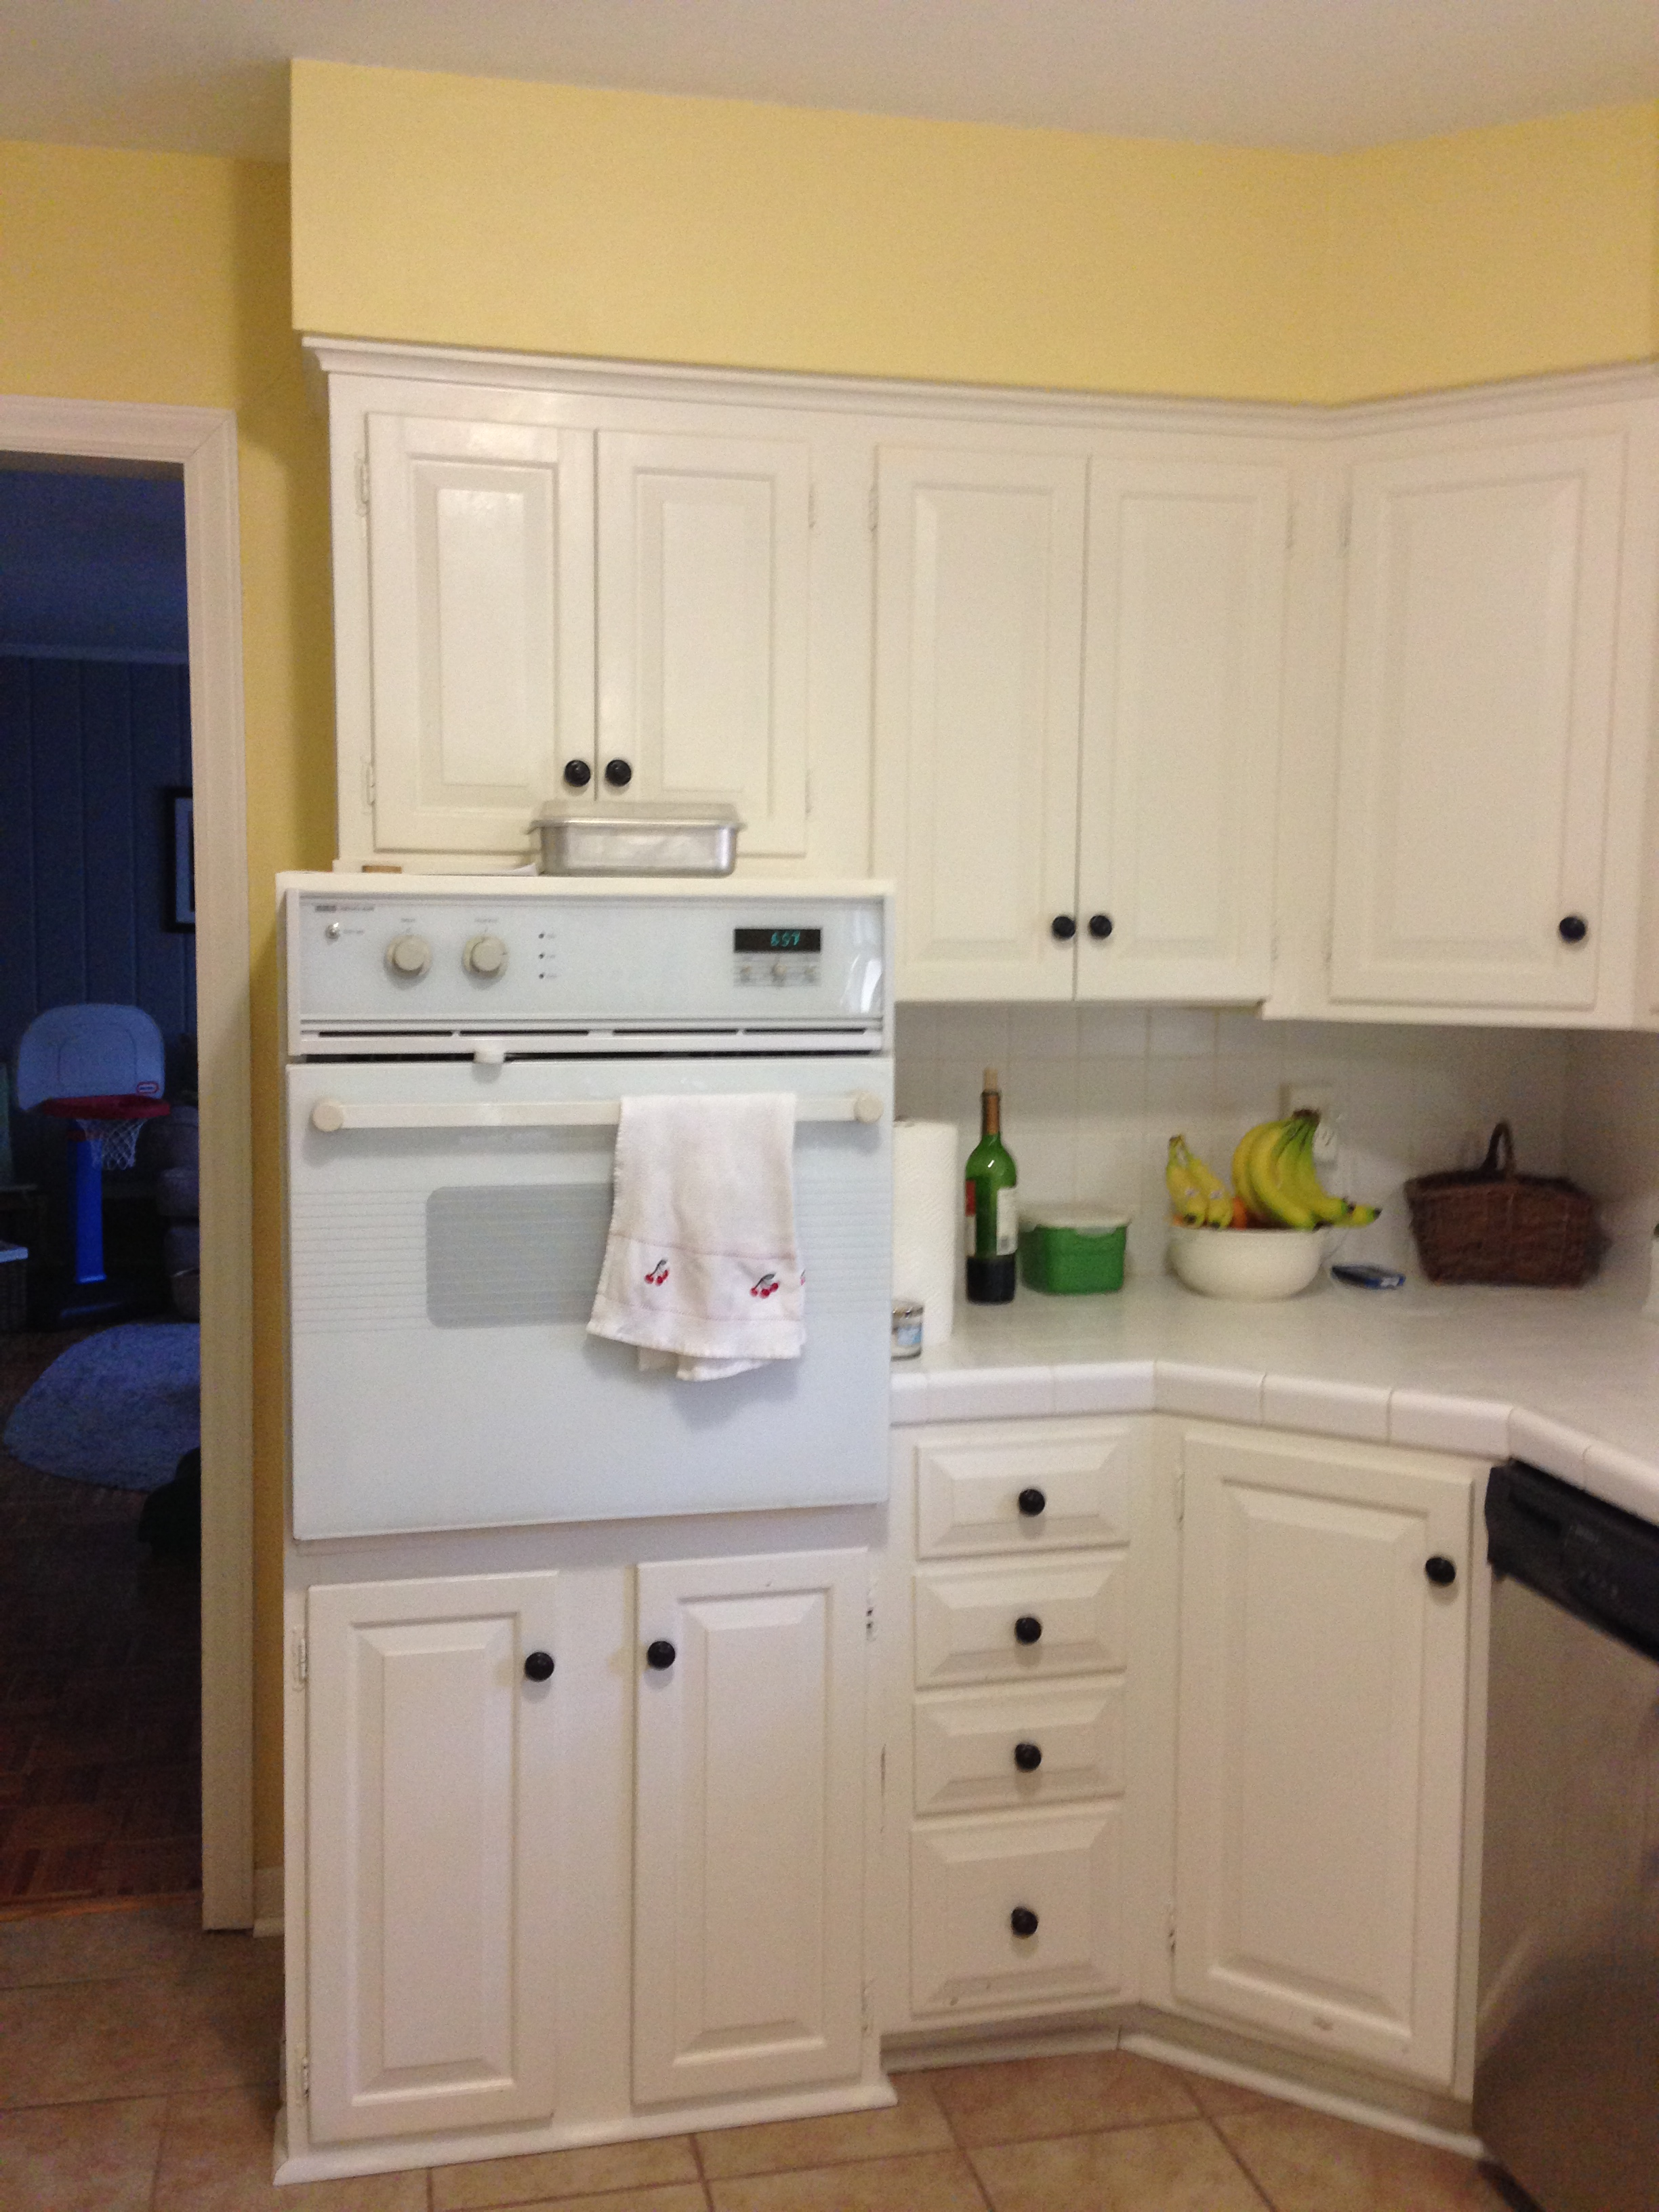 Before: As a passionate cook, our homeowner needed more than this traditional oven could offer. Cooking for guests requires ease of movement, and enough space to prepare multiple dishes at once.